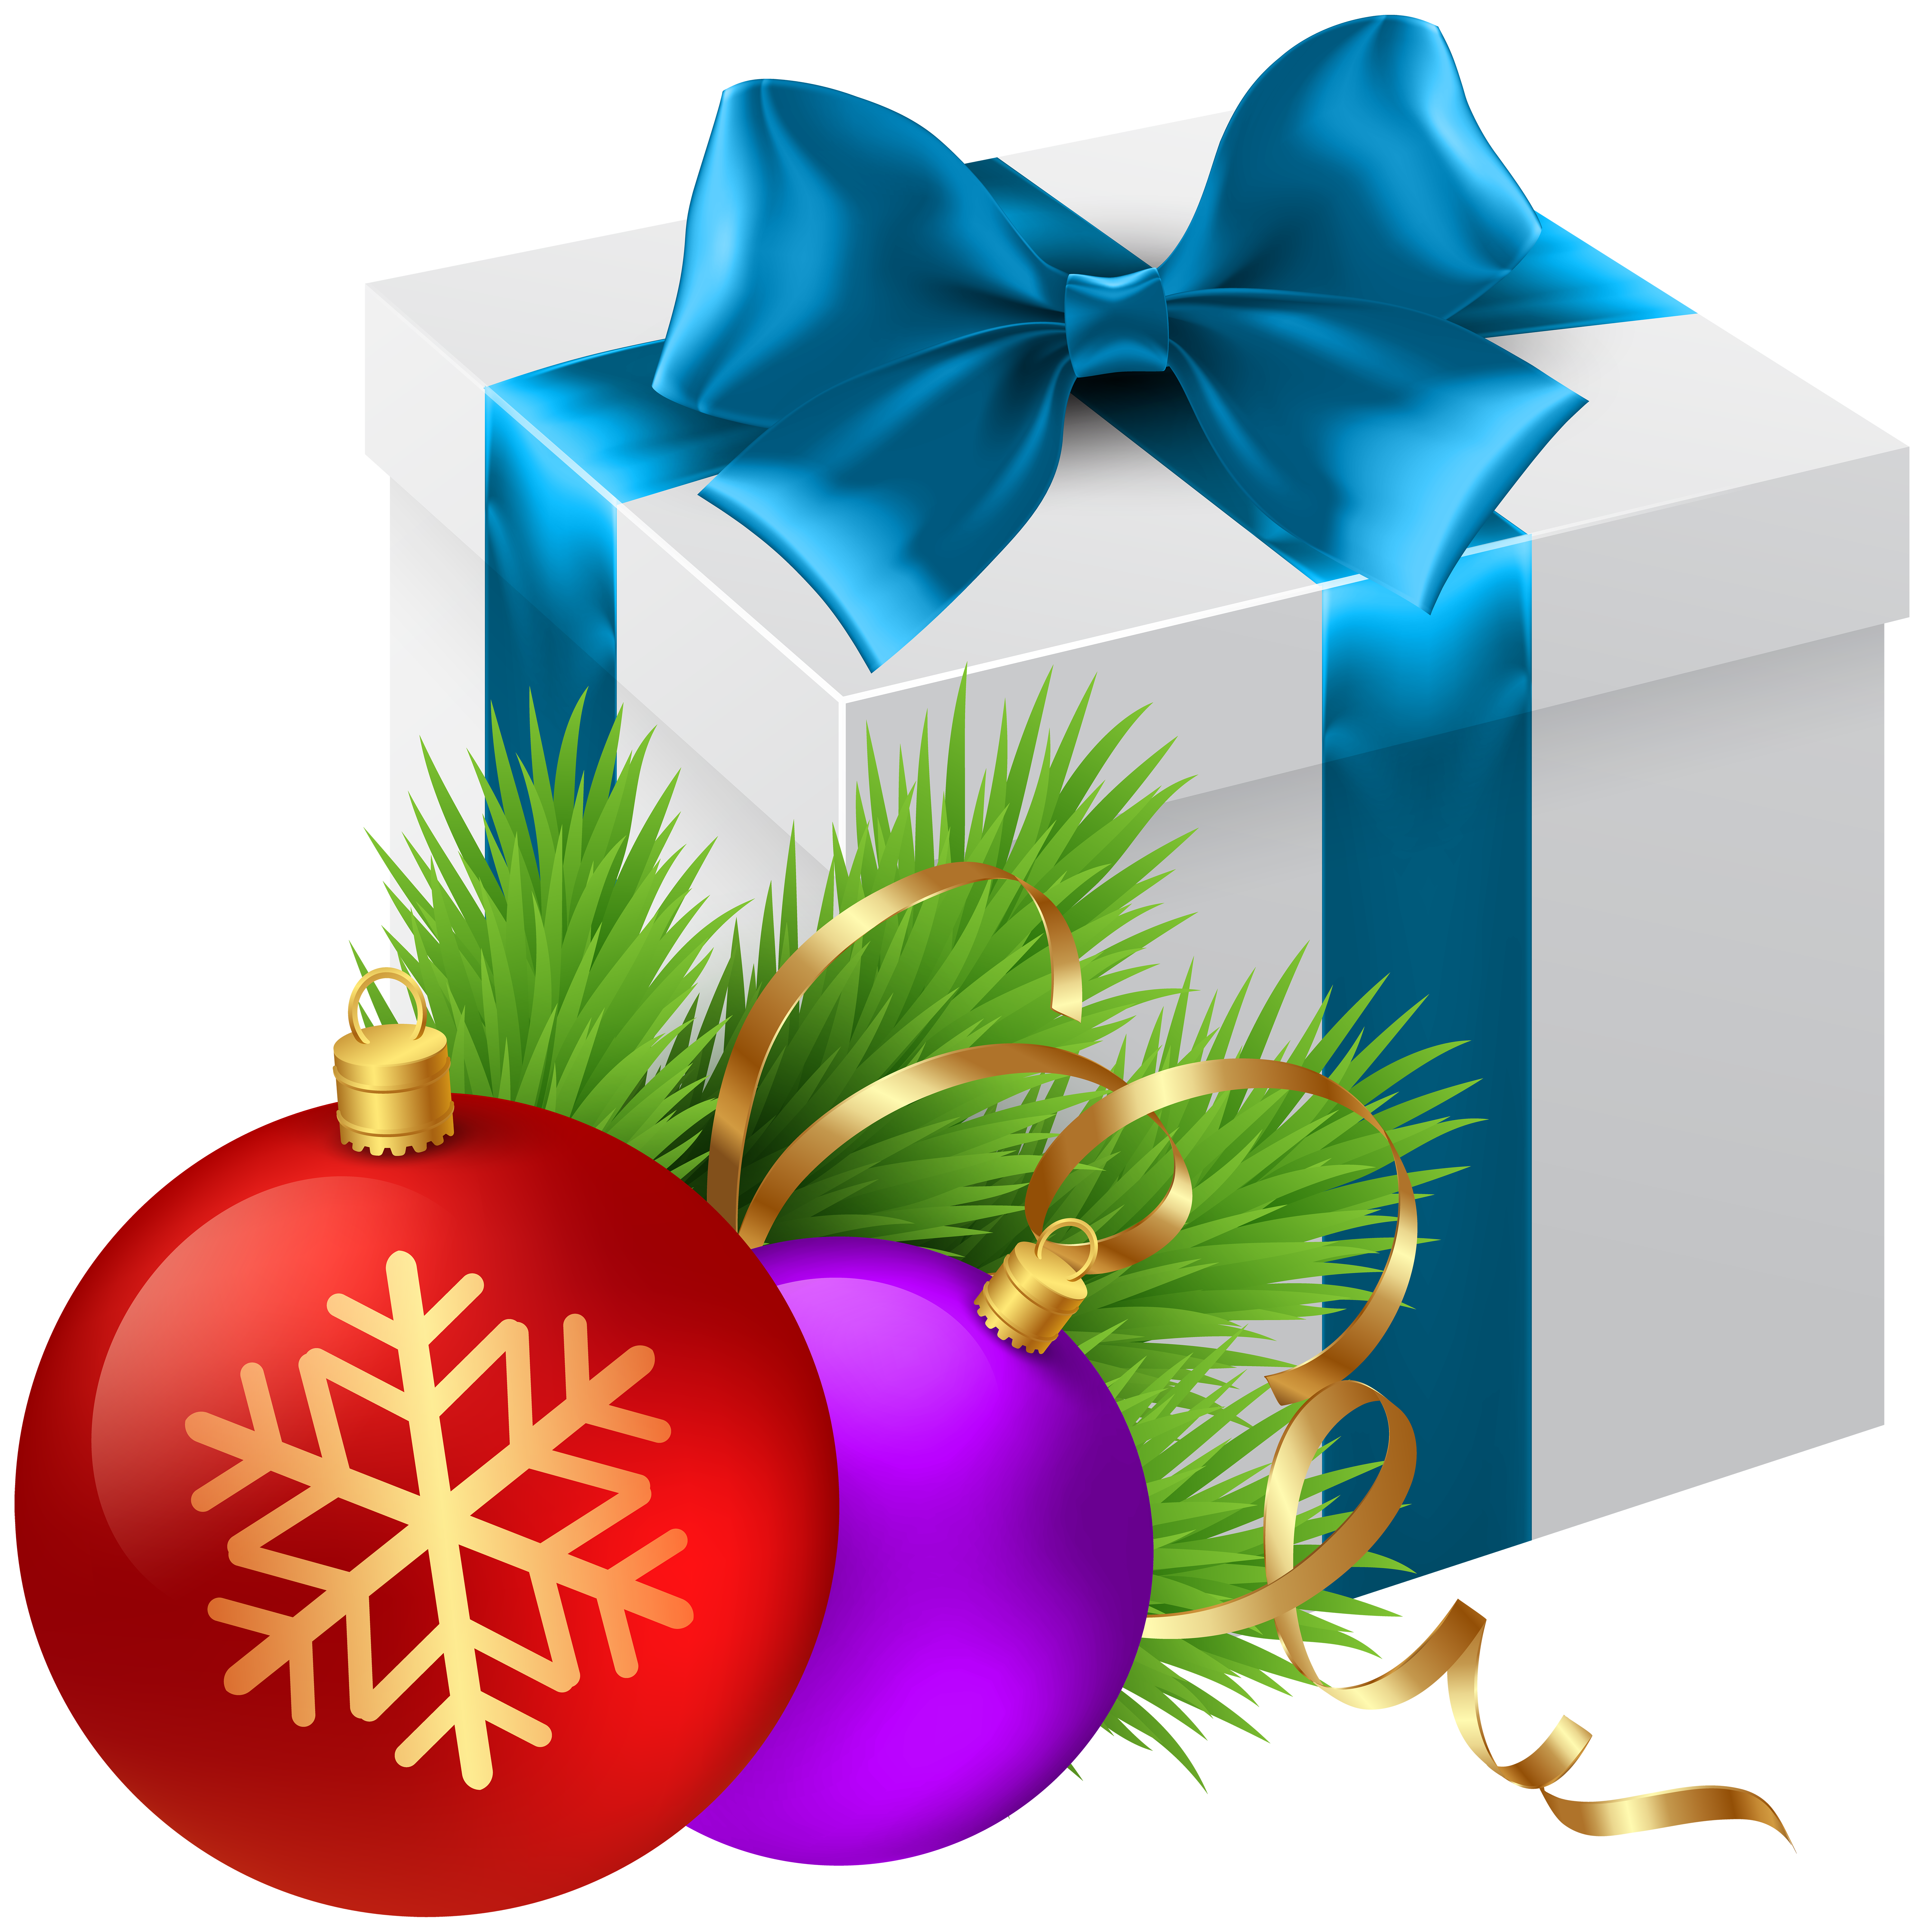 christmas gift transparent png clip art image gallery #28085